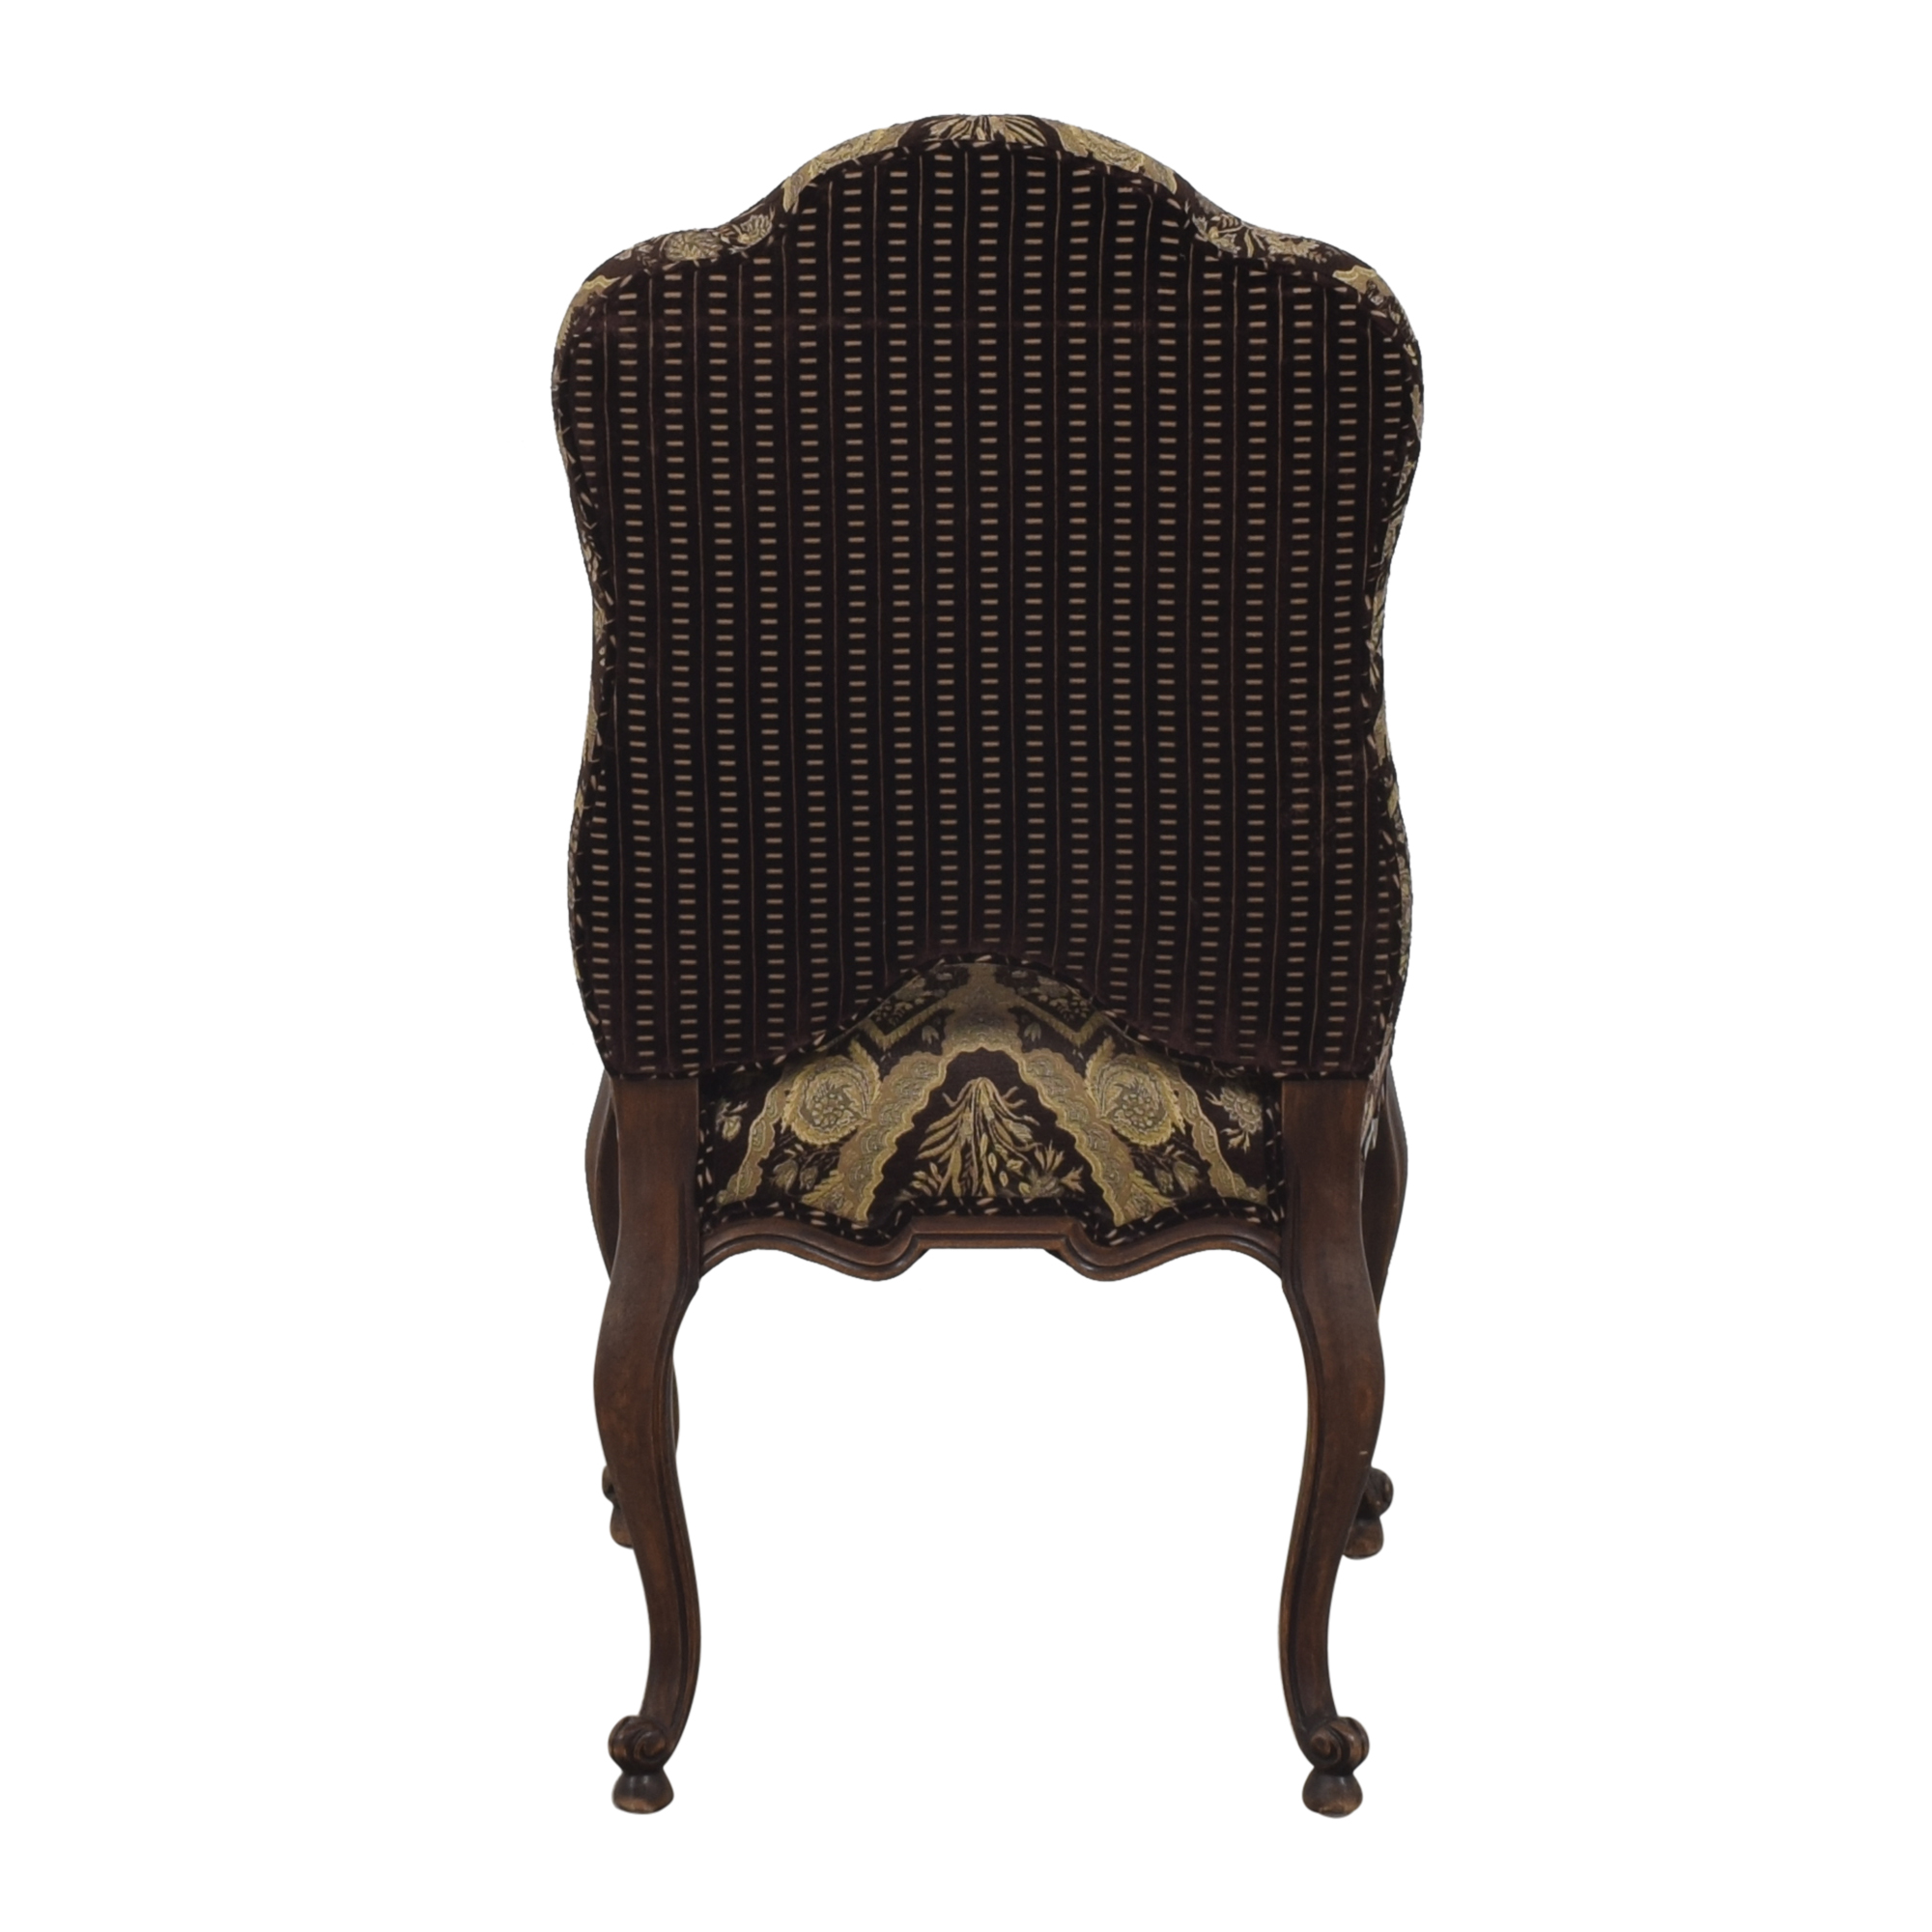 Upholstered Accent Chair / Accent Chairs